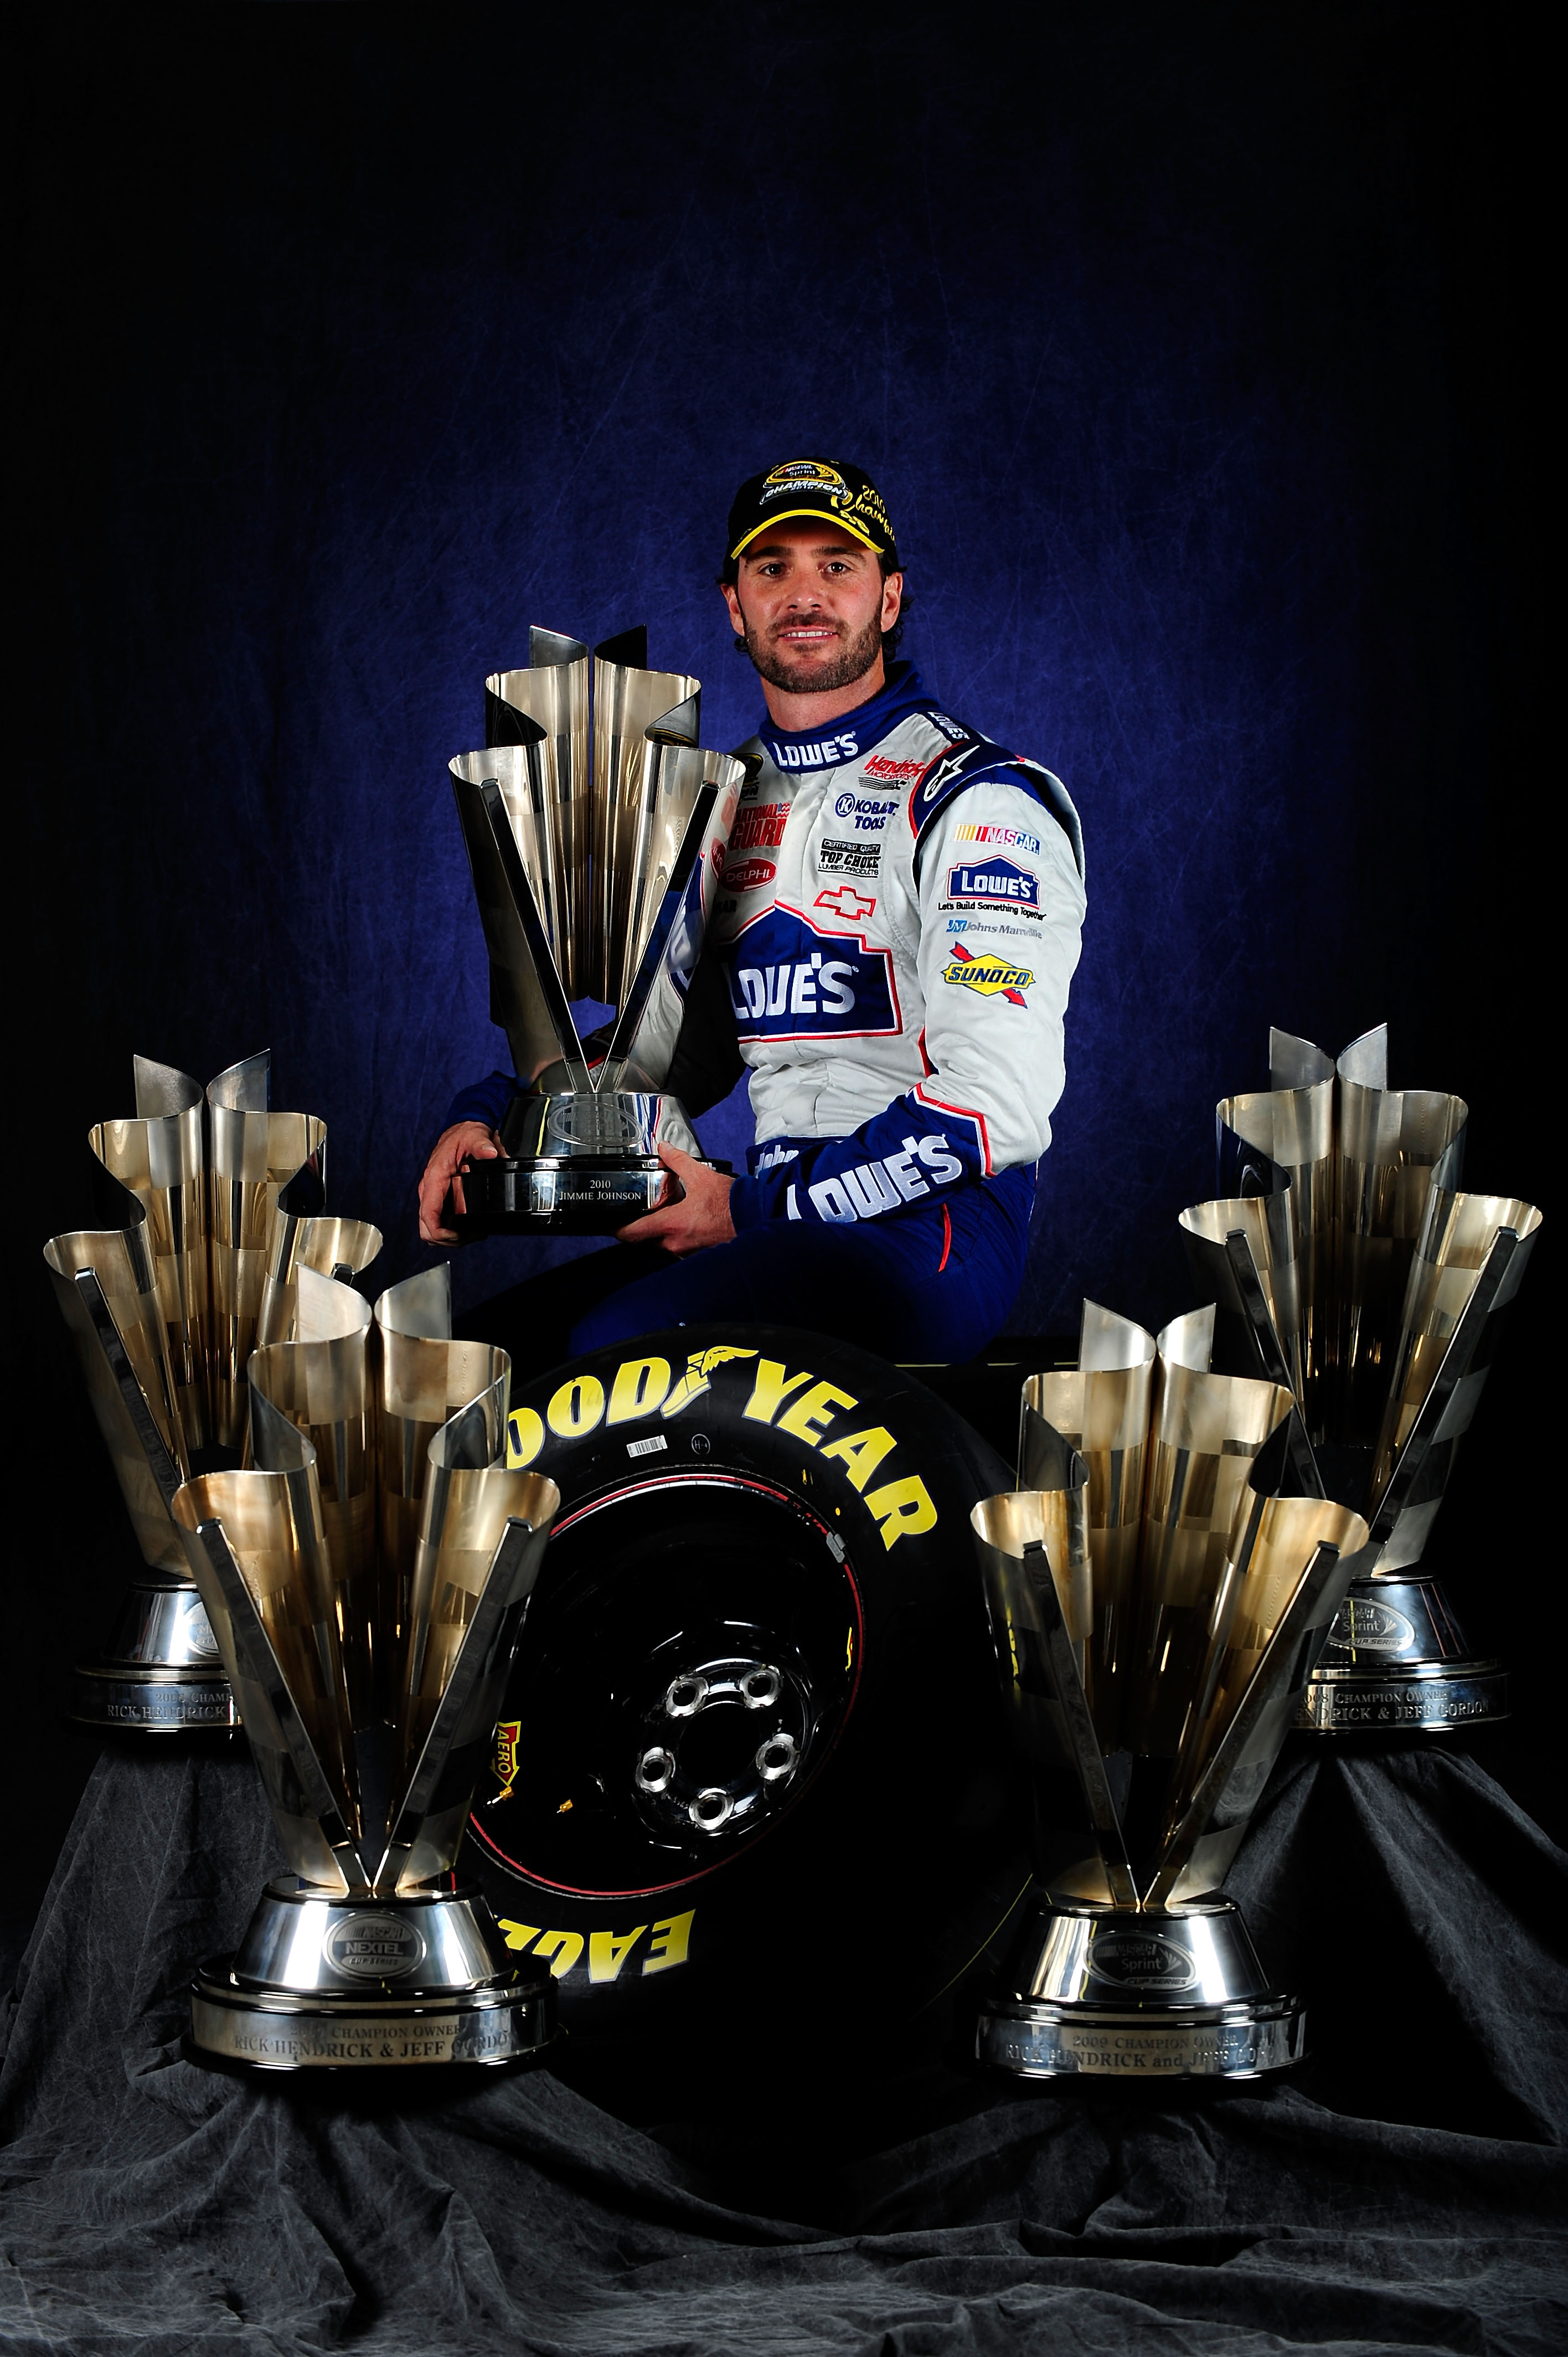 HOMESTEAD, FL - NOVEMBER 21:  NASCAR Champion Jimmie Johnson, driver of the #48 Lowe's Chevrolet, poses with the Sprint Cup Series Championship trophies at Homestead-Miami Speedway on November 21, 2010 in Homestead, Florida. Johnson clinched his fifth str